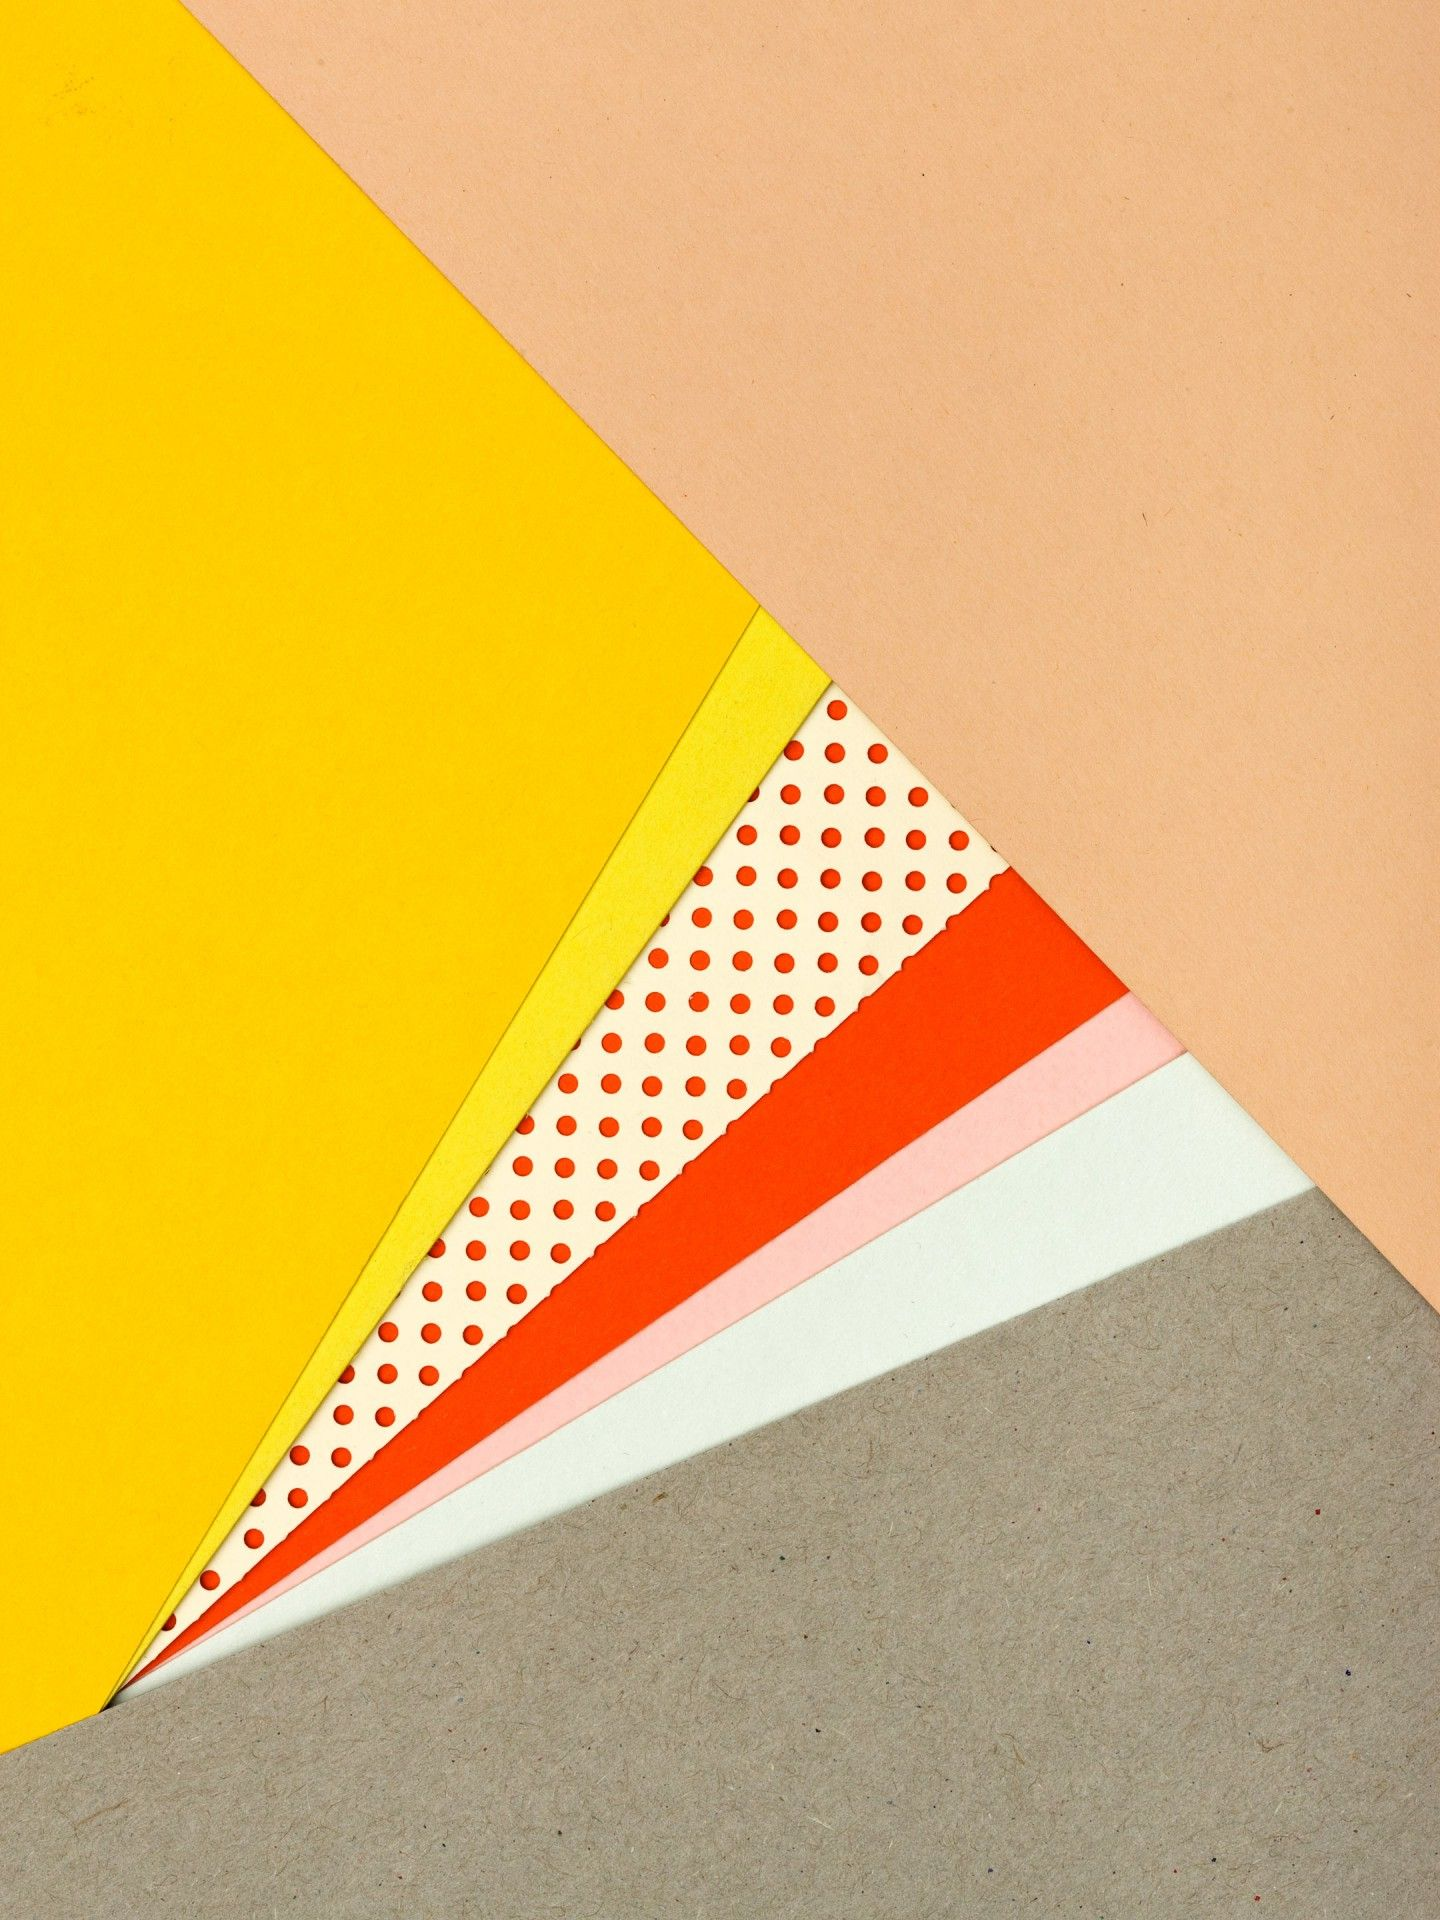 Explore self-initiated projects by Carl Kleiner